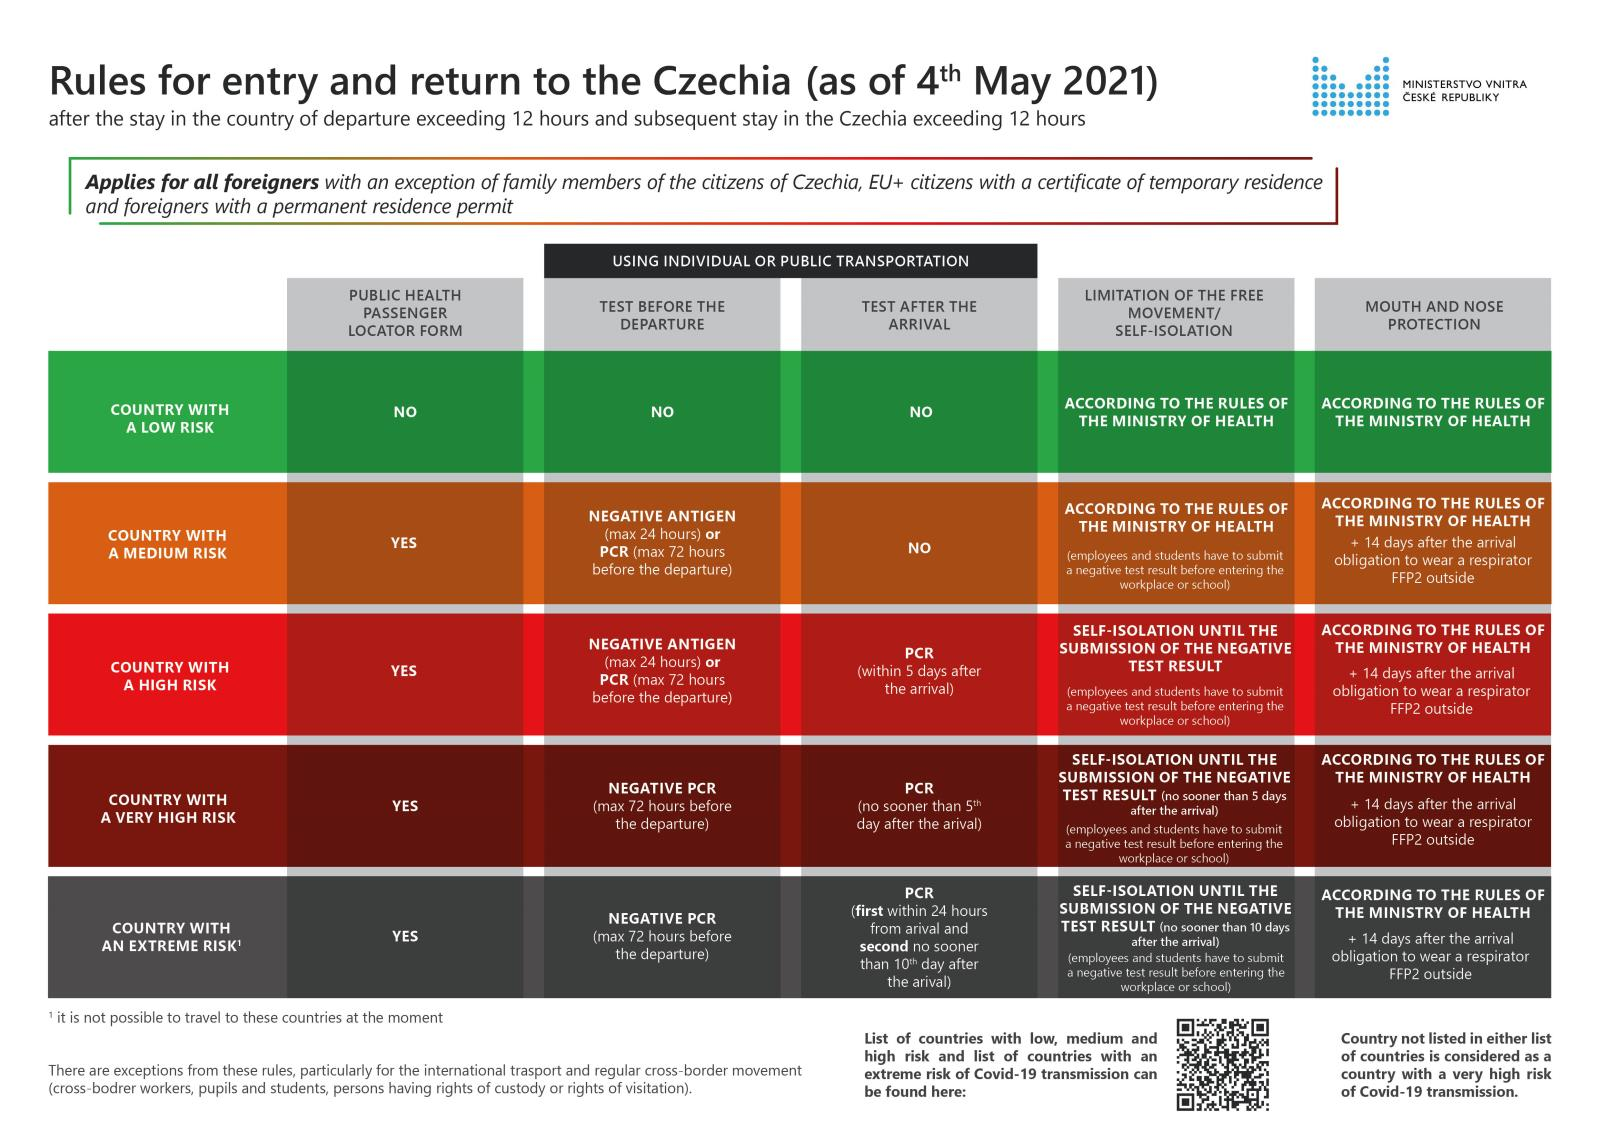 Rules_for_entry_and_return_to_the_Czechia_for_3rd_countries_as_of_May_4th_2021_-_20210504.jpg